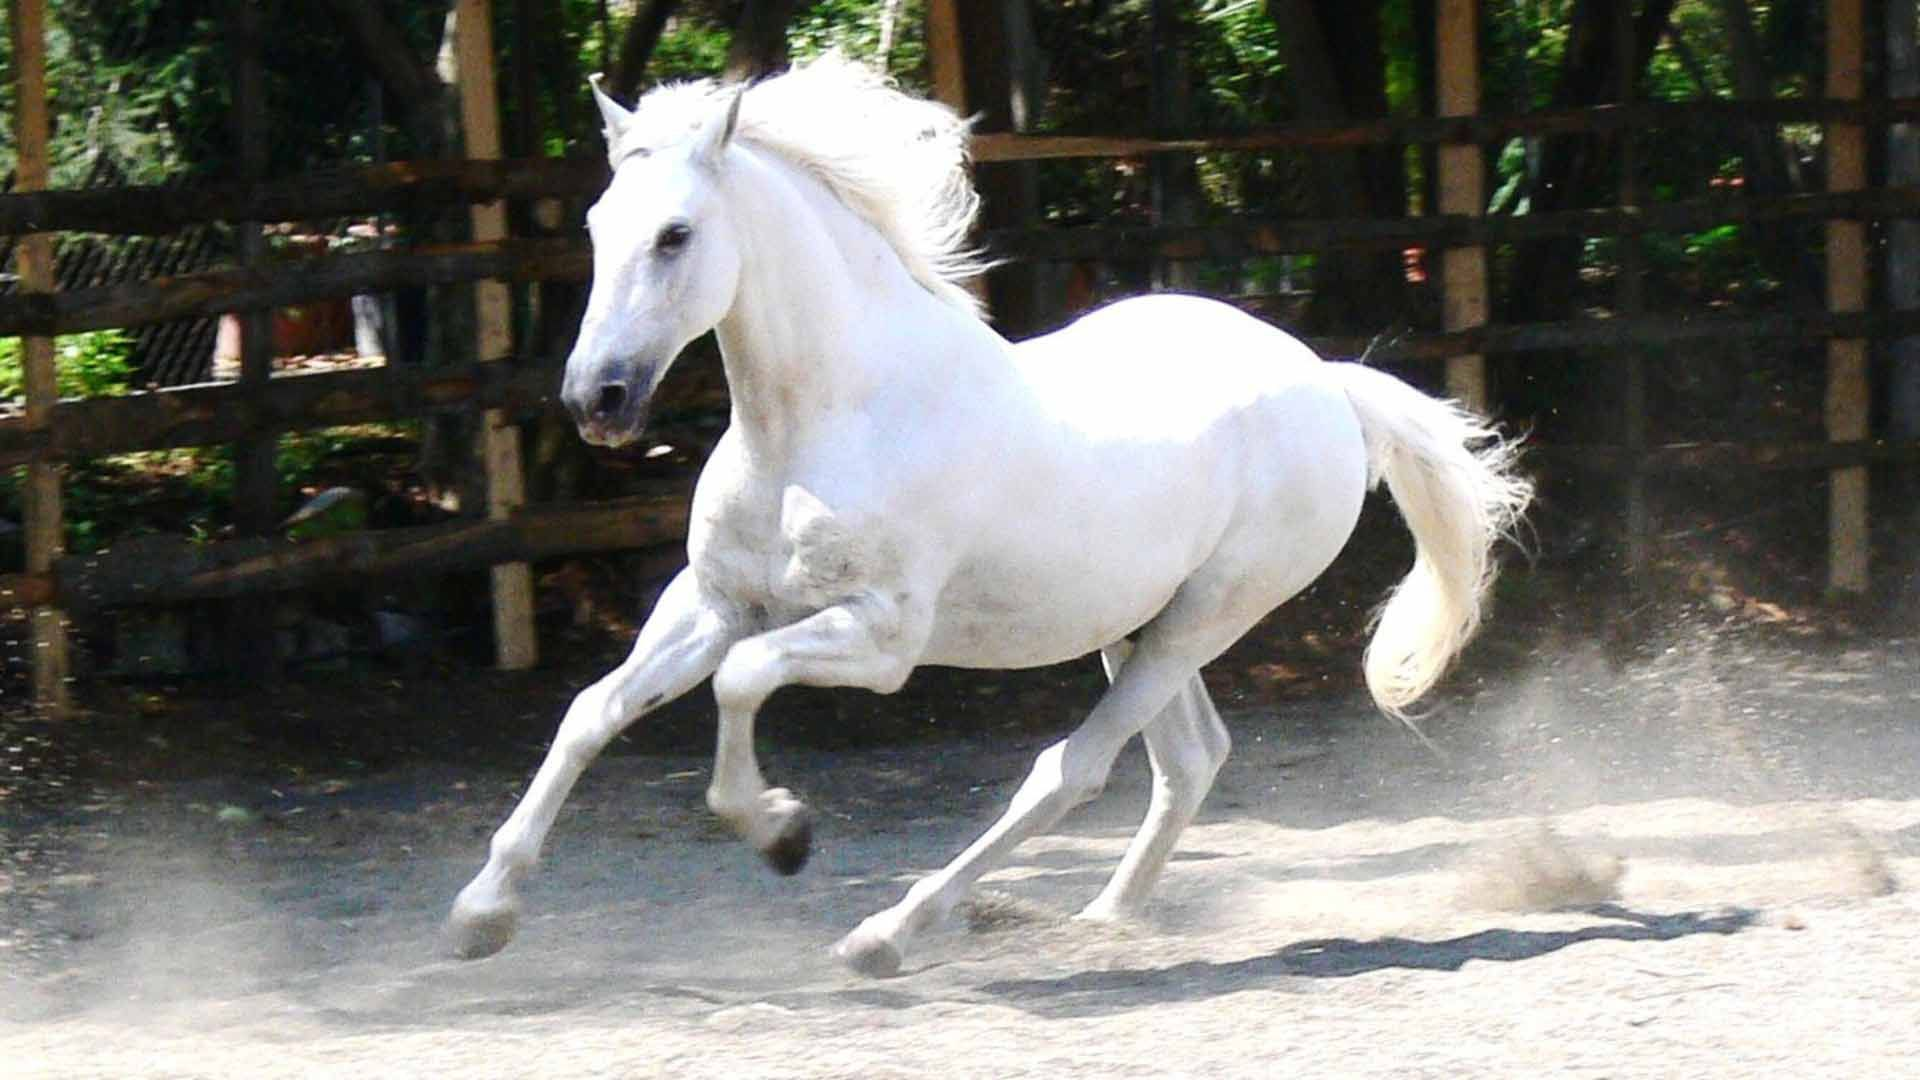 White Horse Hd Wallpapers Free Download 1 Jpg 1920 1080 Horses Horse Wallpaper White Horses